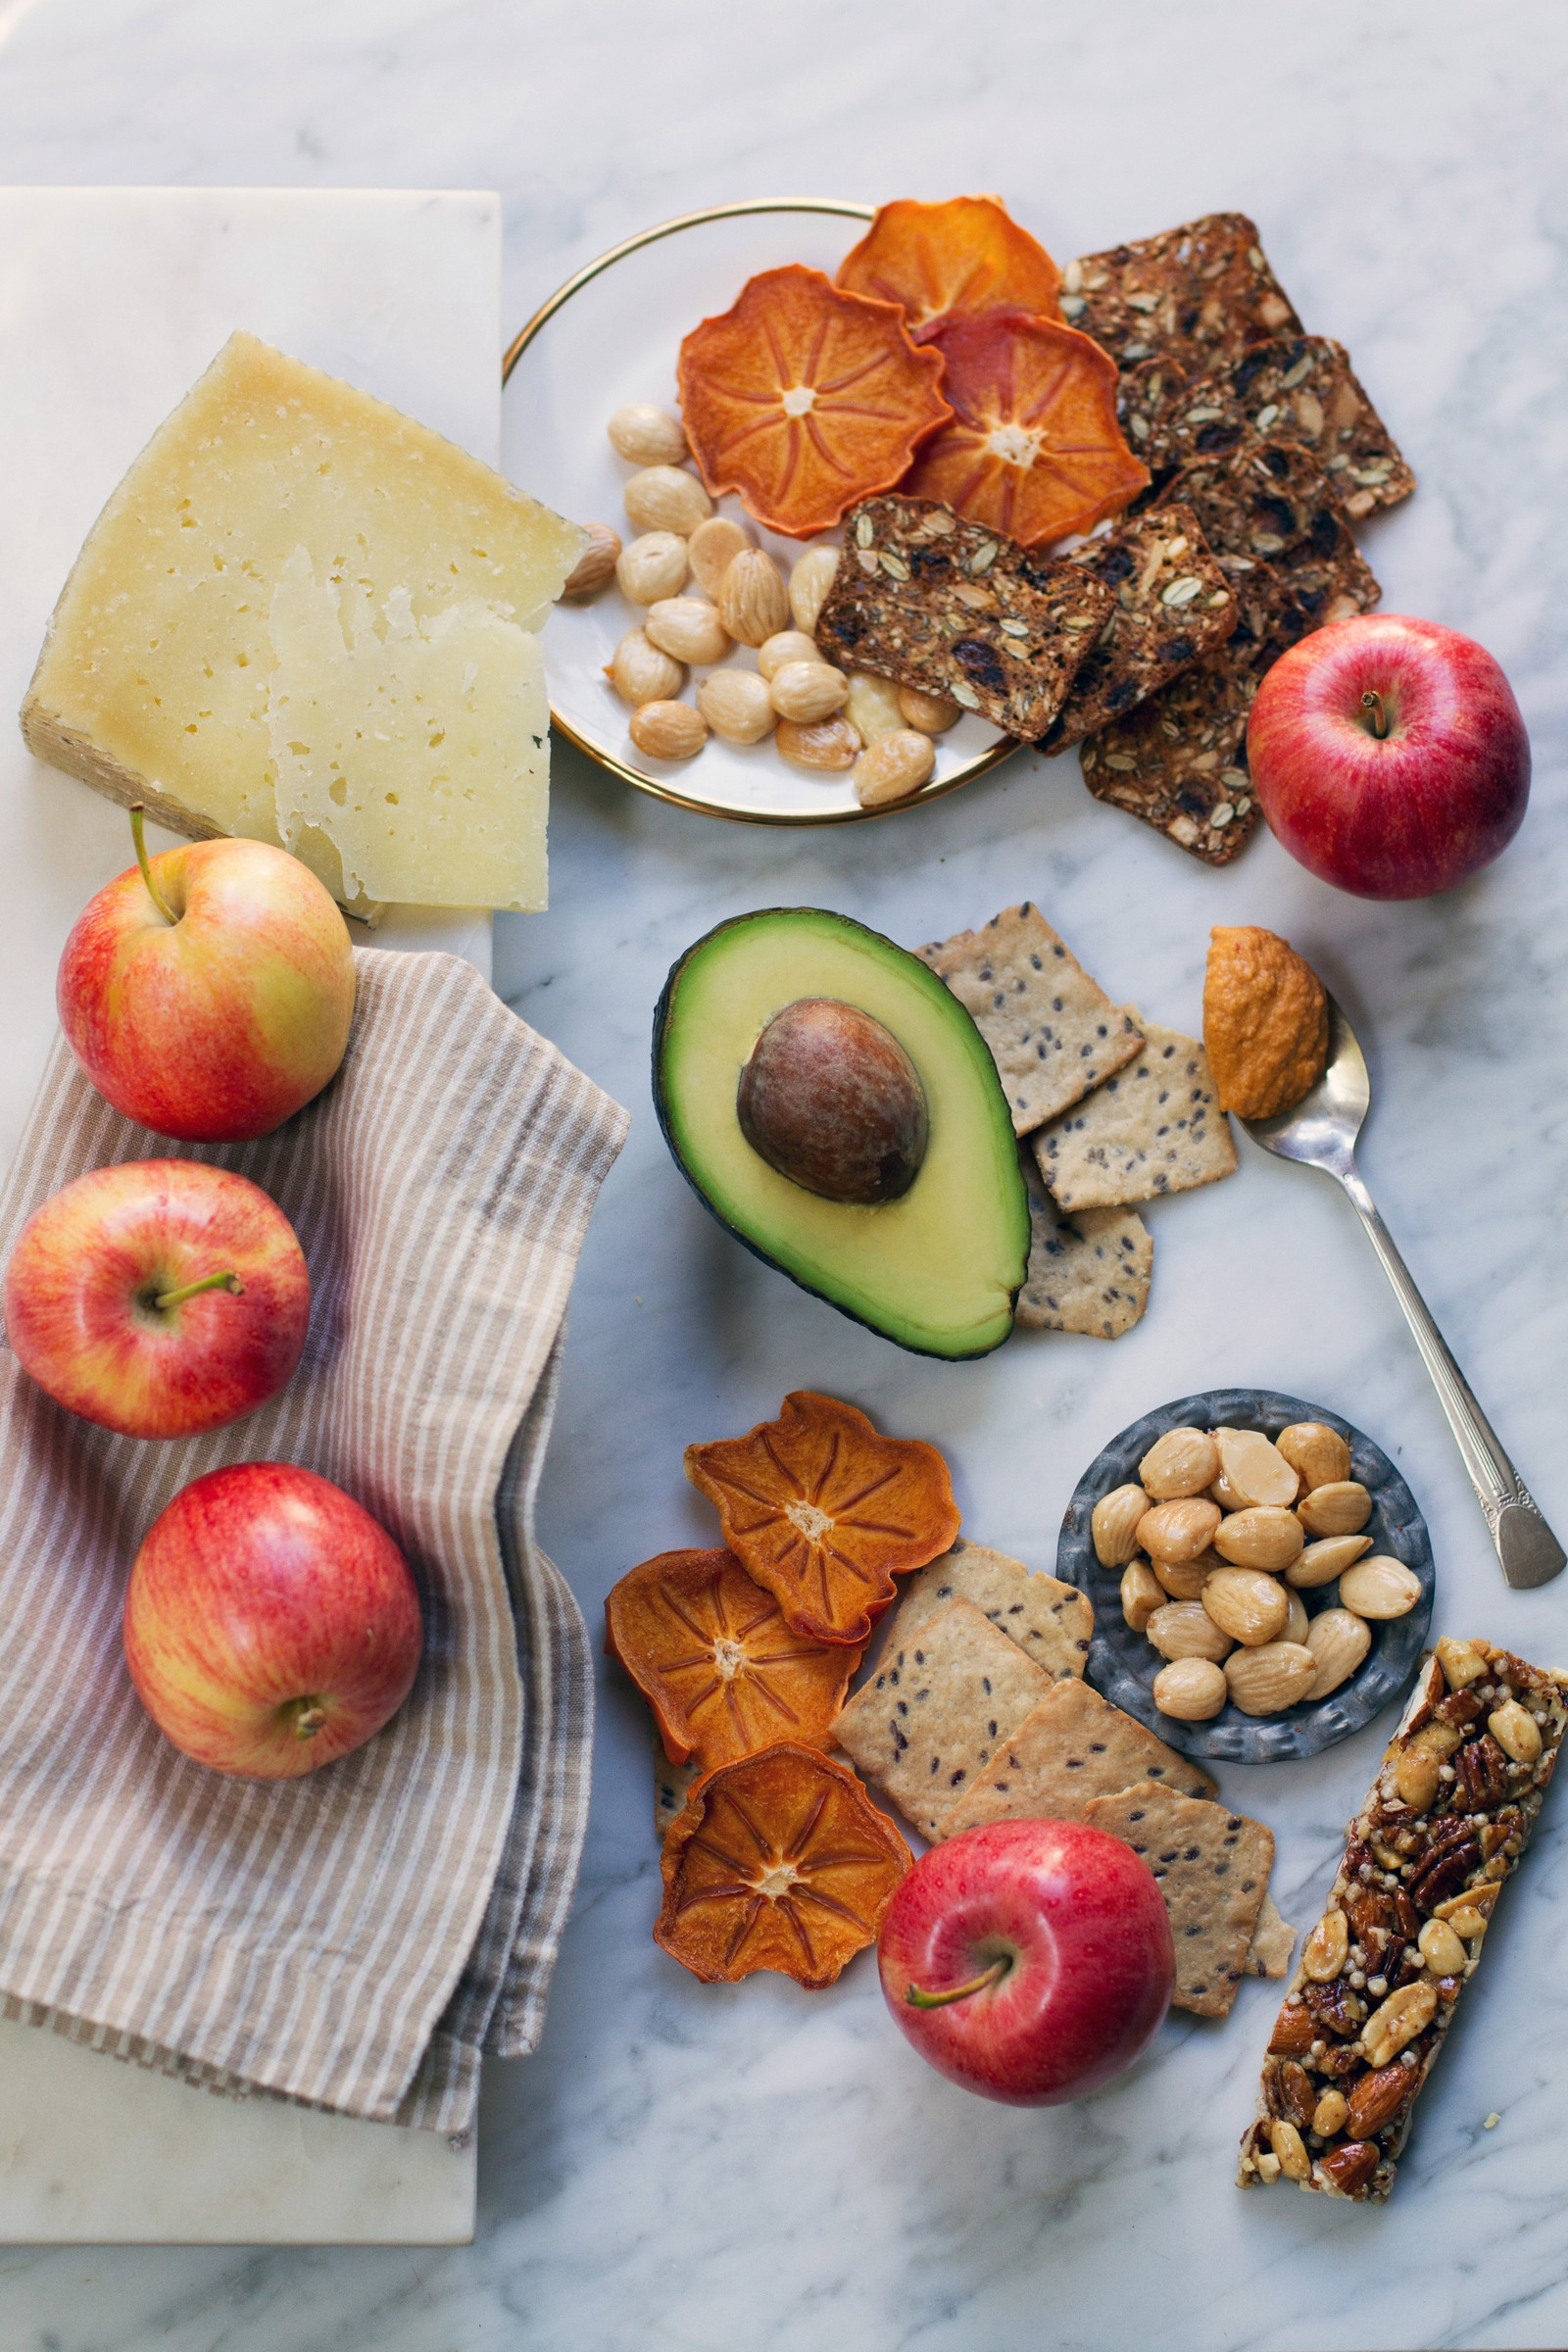 Healthy Travel Snacks  Travel Snacks That Taste Better Than Airplane Food